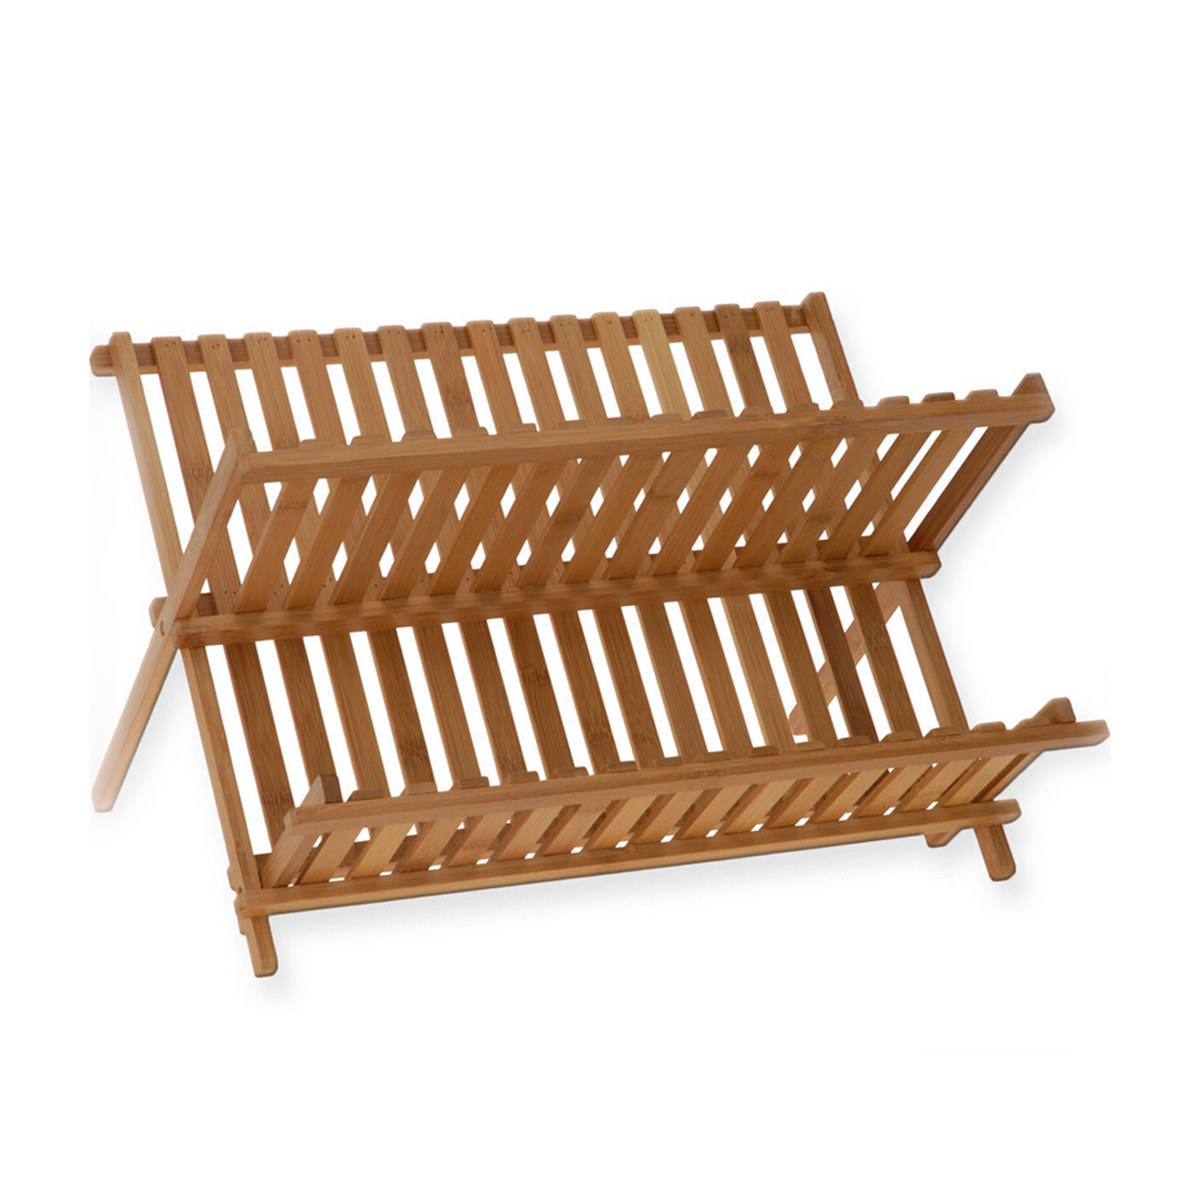 Bamboo Dish Drying Rack.Us 18 34 46 Off Natural Bamboo Dish Drying Rack Flatware Holder Plate Storage Holder Plate Wooden Flatware Foldable Dish Rack Wood Color In Storage